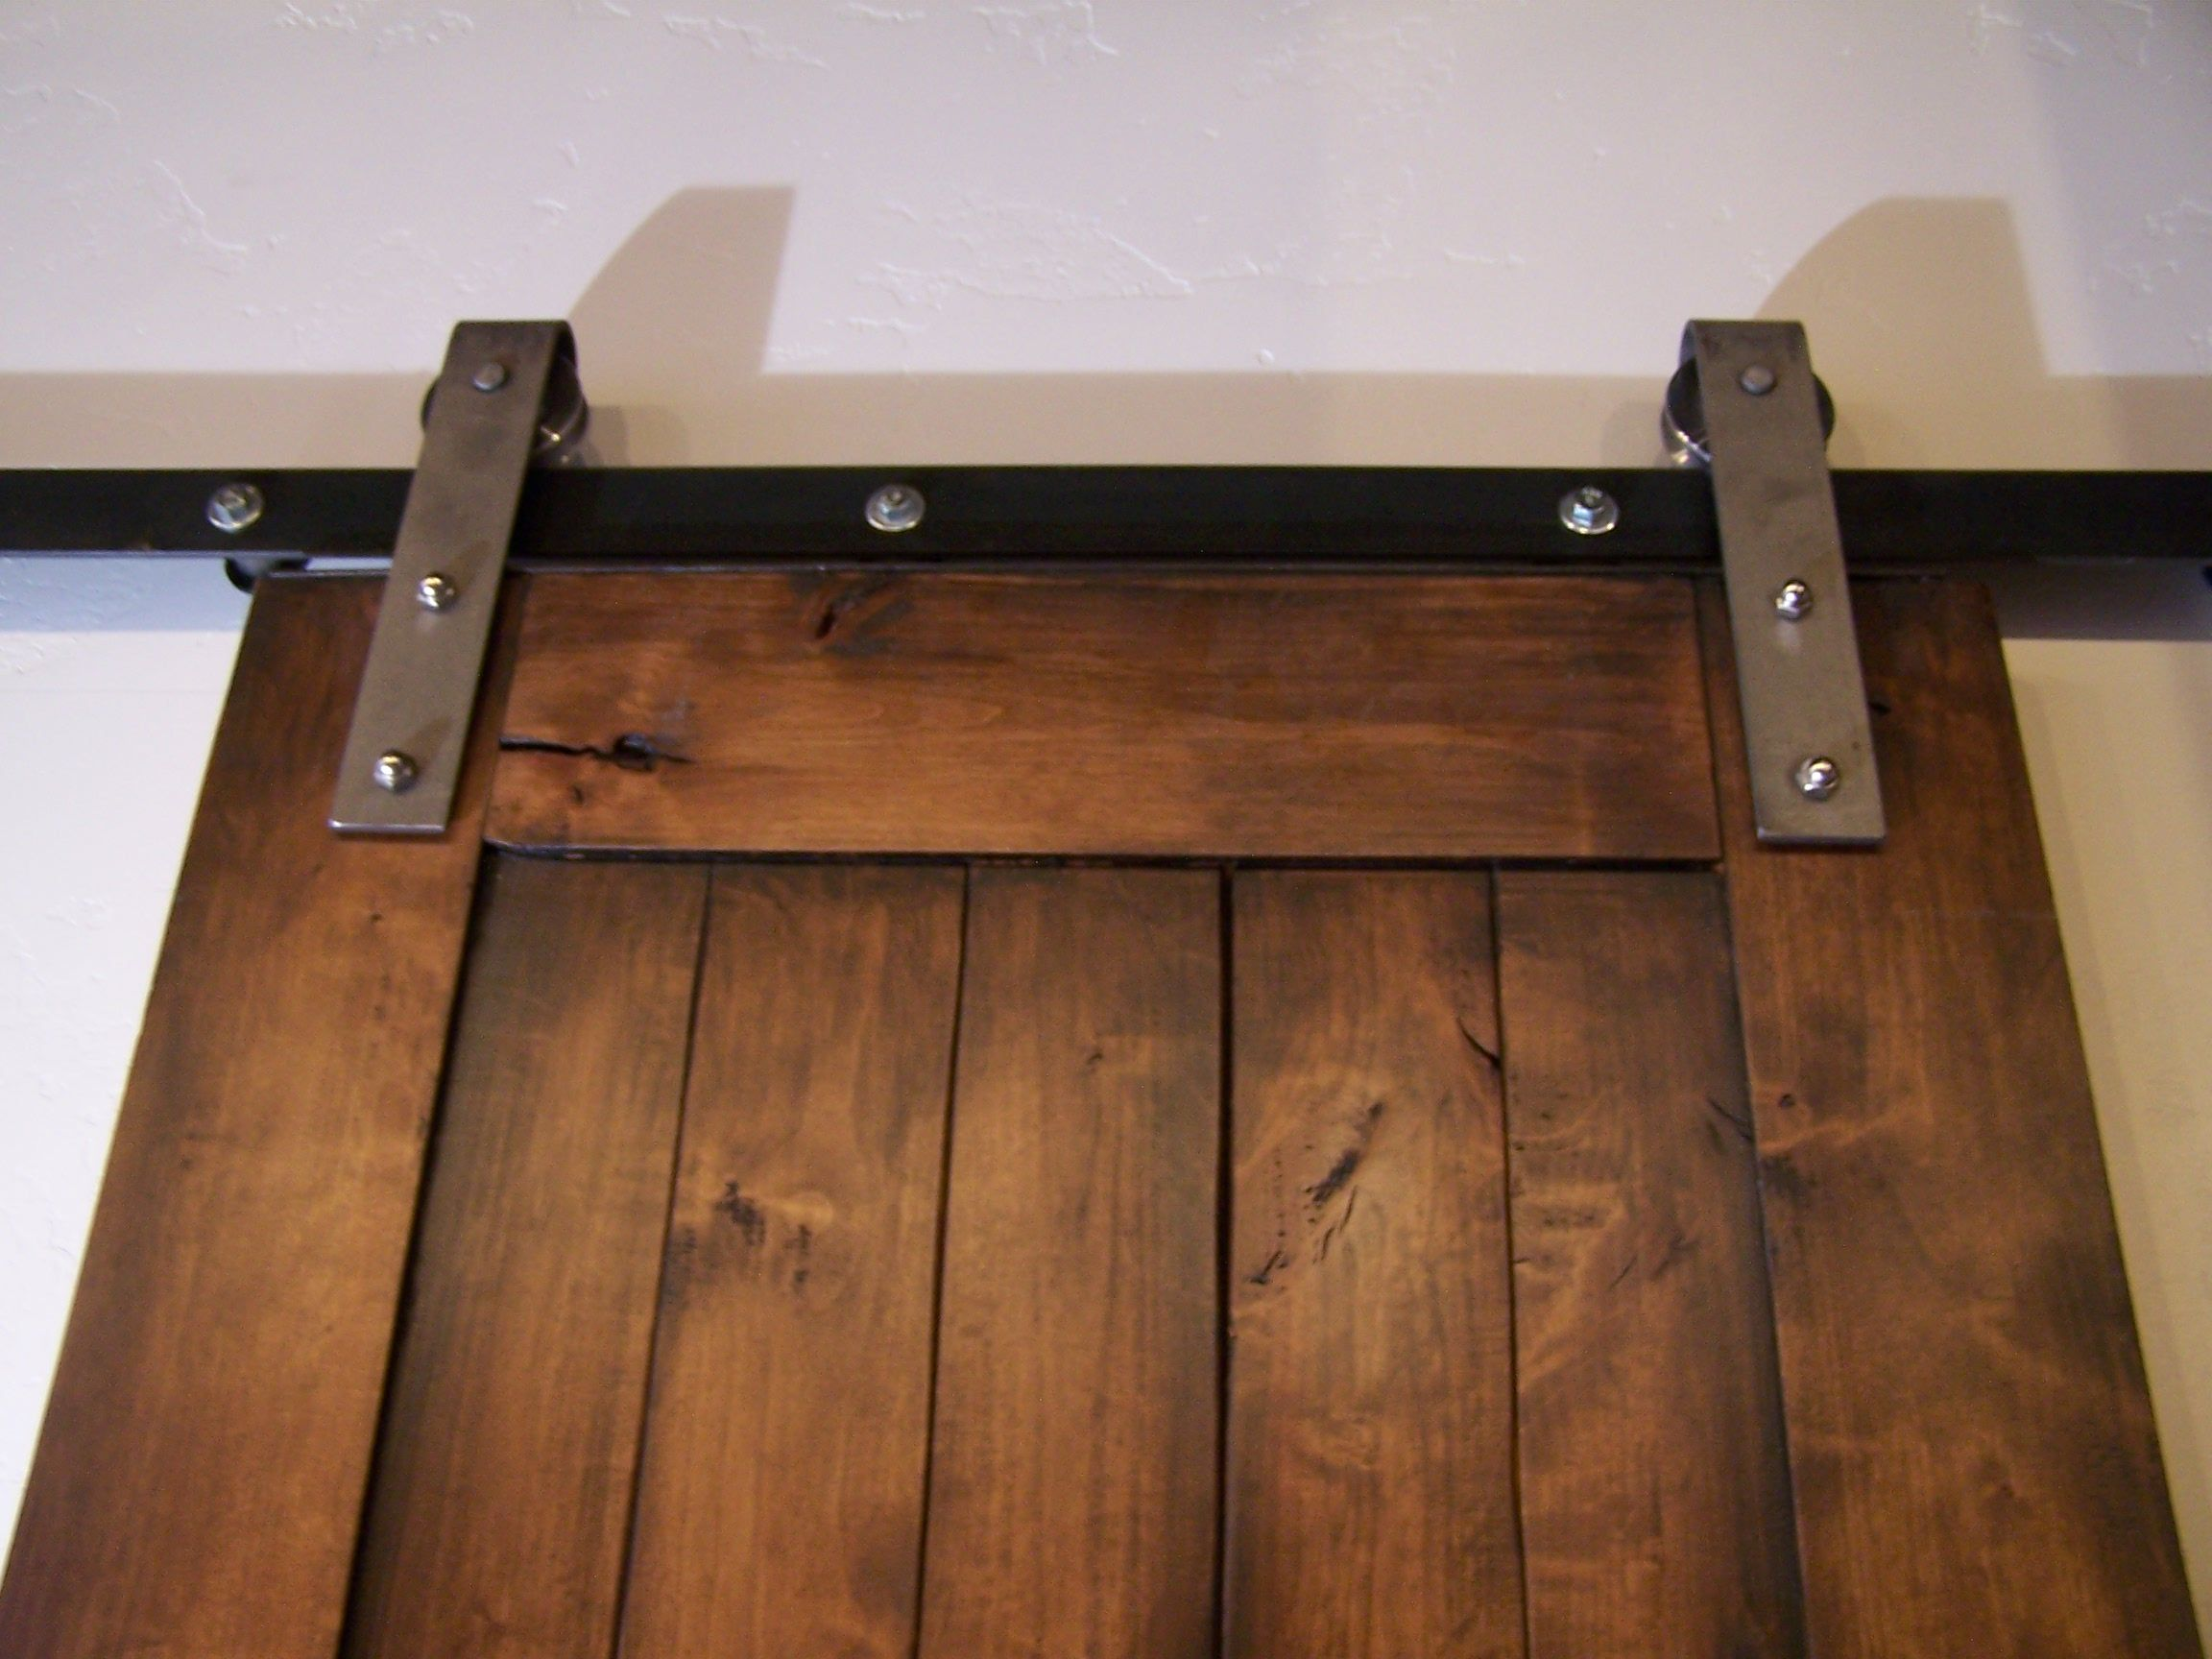 Industrial Barn Door Hardware With A Brushed Steel Finish The